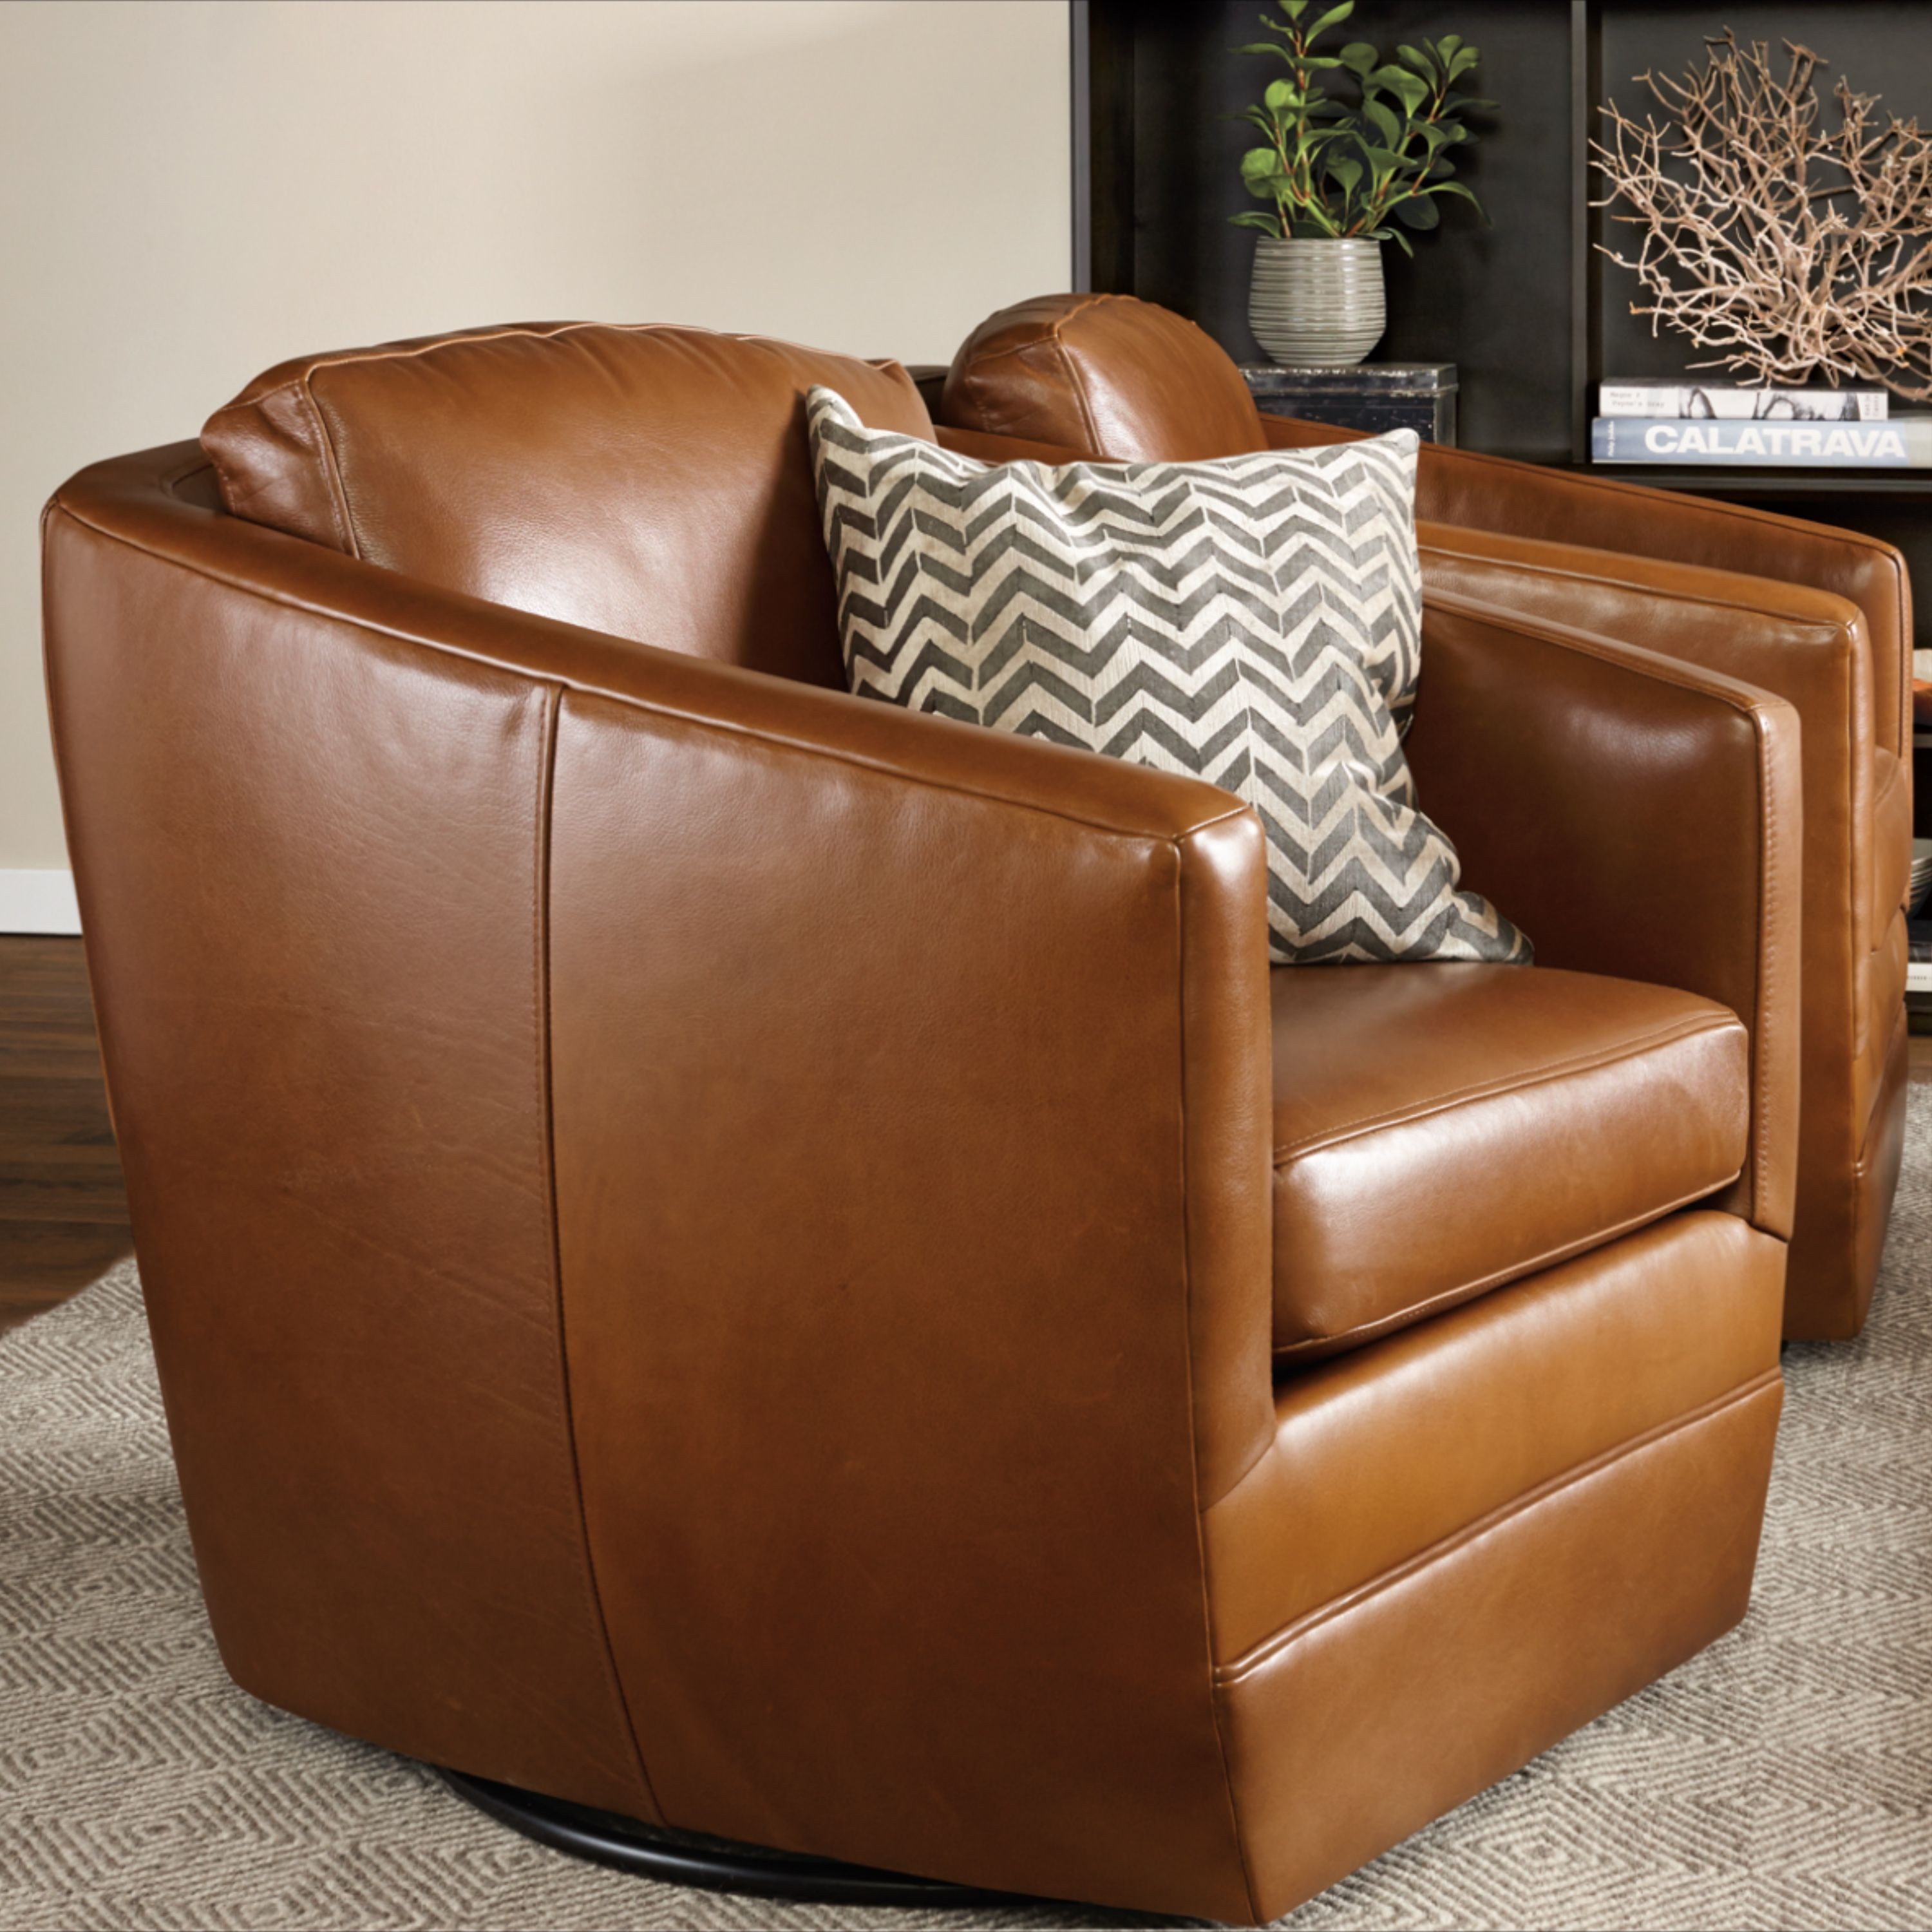 Ford Leather Swivel Glider Chair Modern Living Room Furniture Room Board Leather Swivel Chair Modern Furniture Living Room Leather Chair